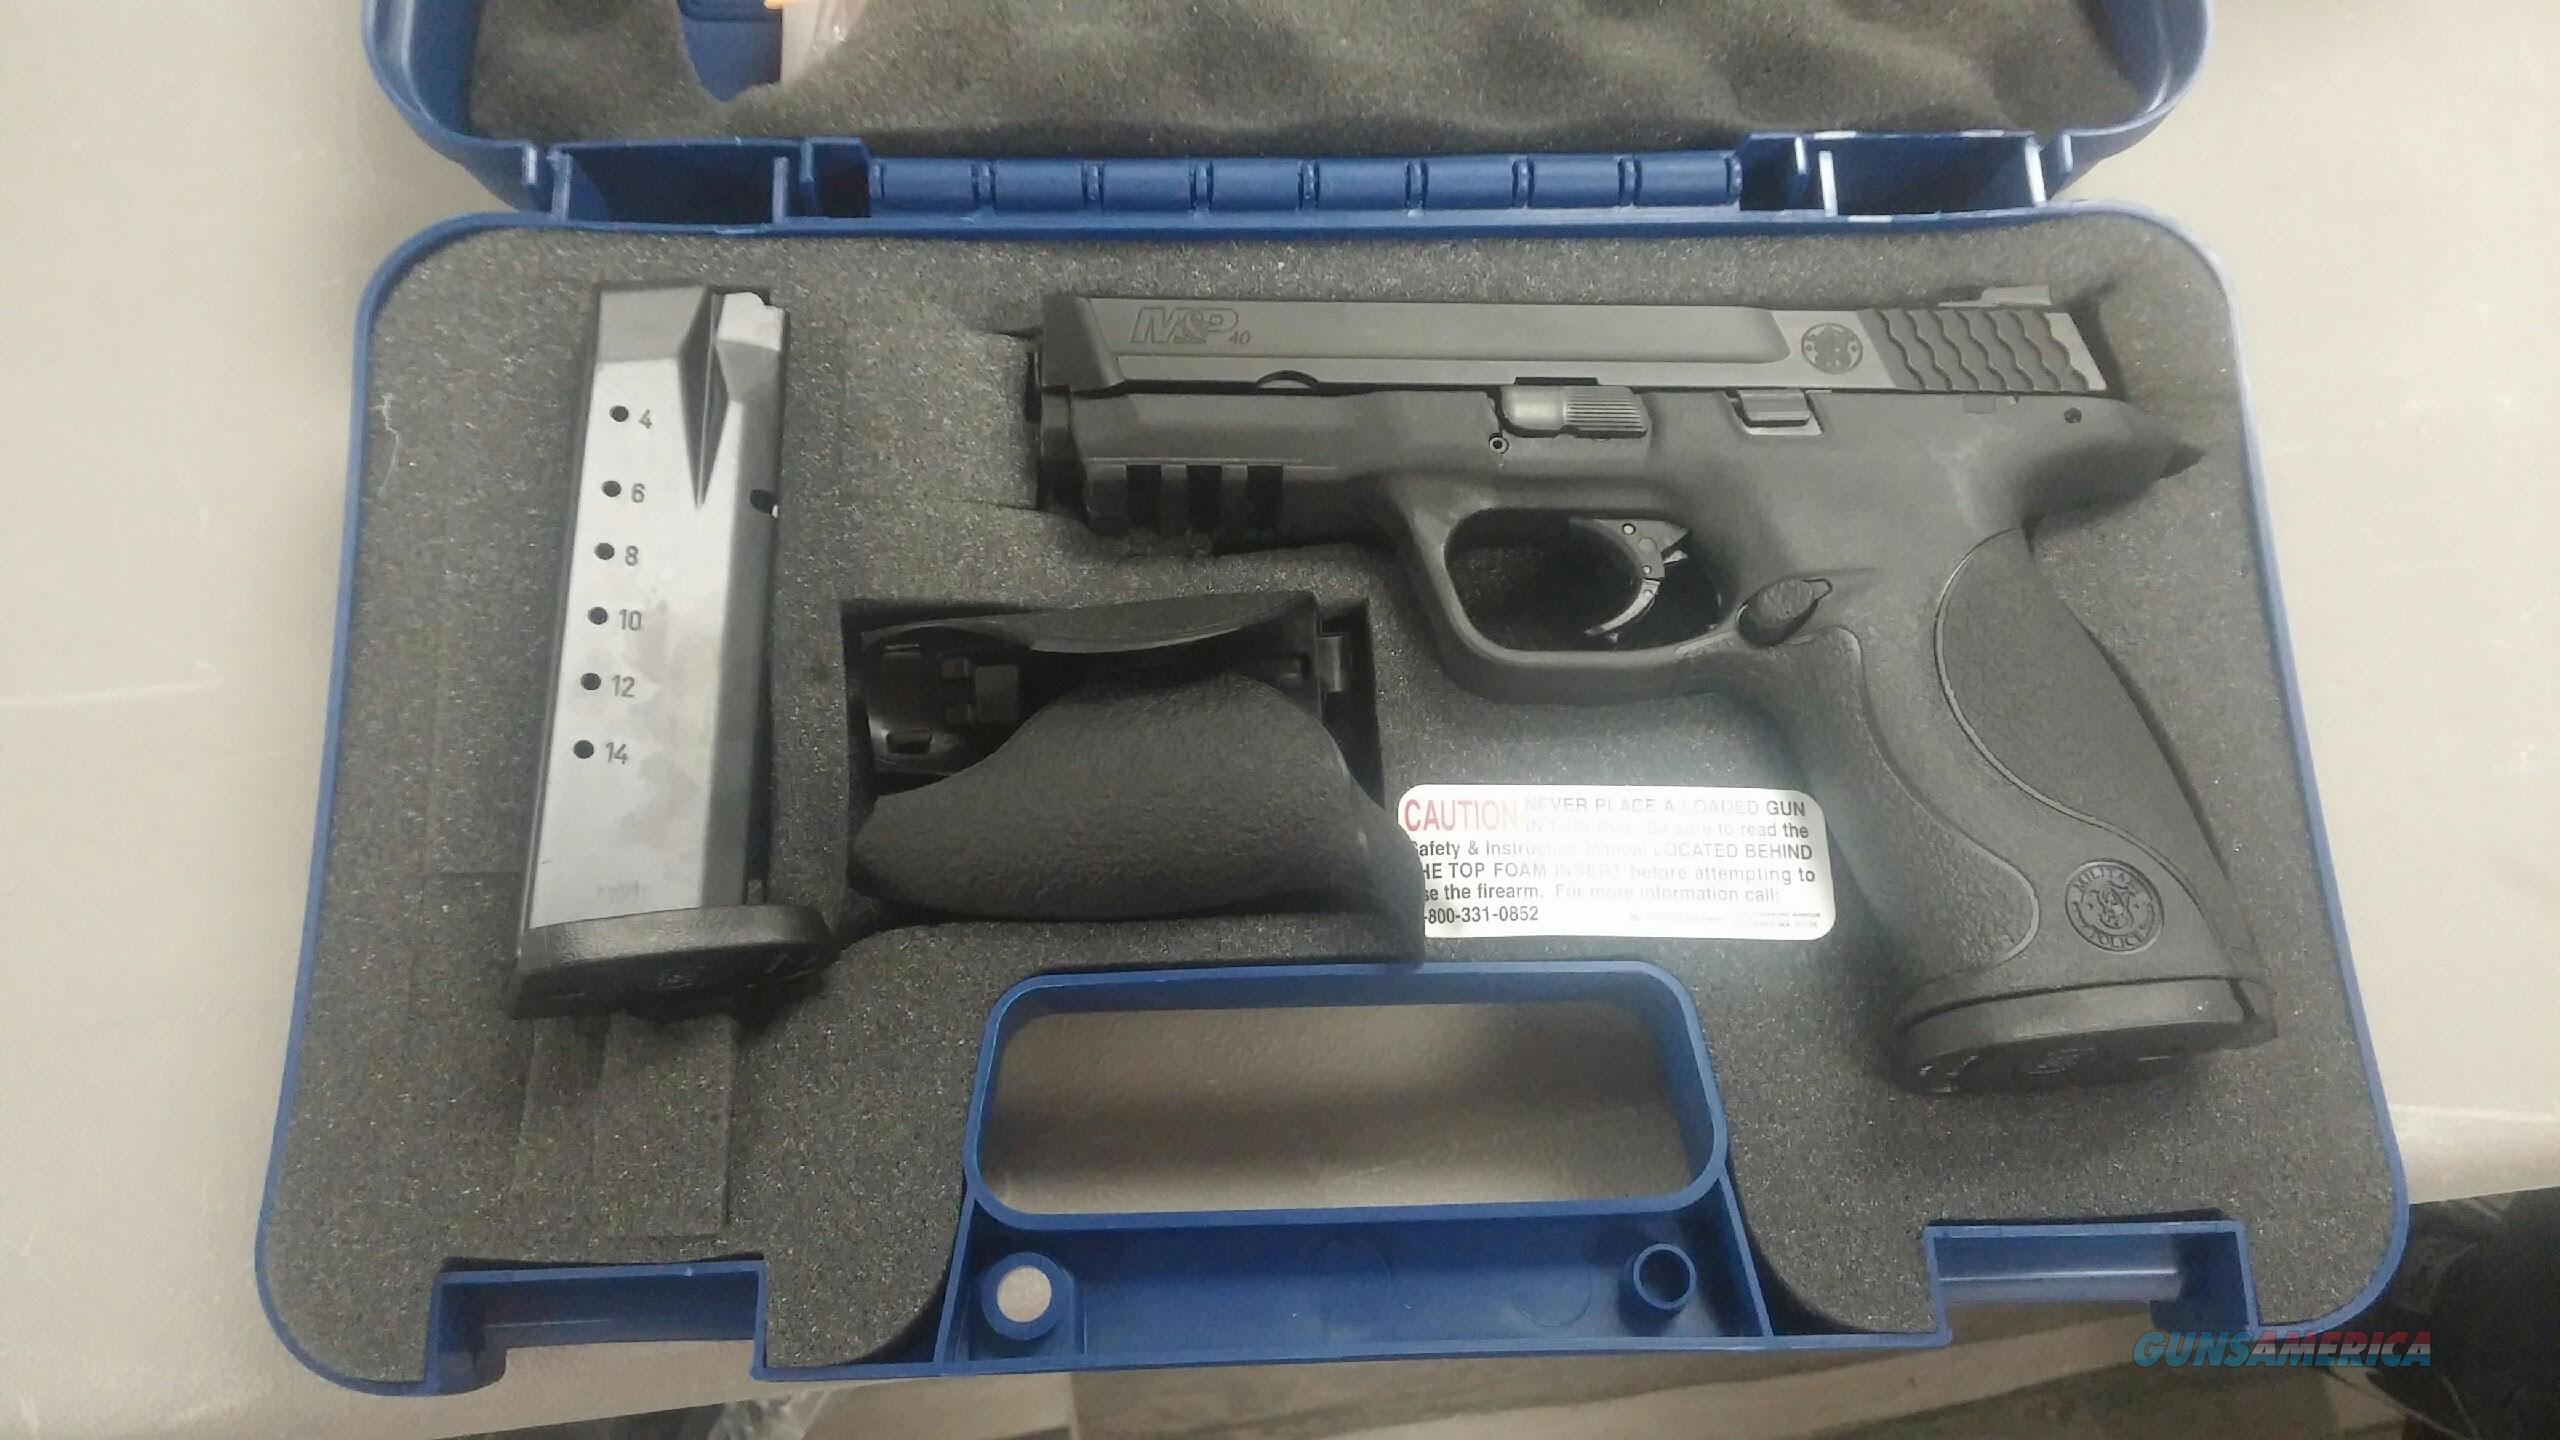 Smith & Wesson M&P40 .40 S&W  Guns > Pistols > Smith & Wesson Pistols - Autos > Polymer Frame